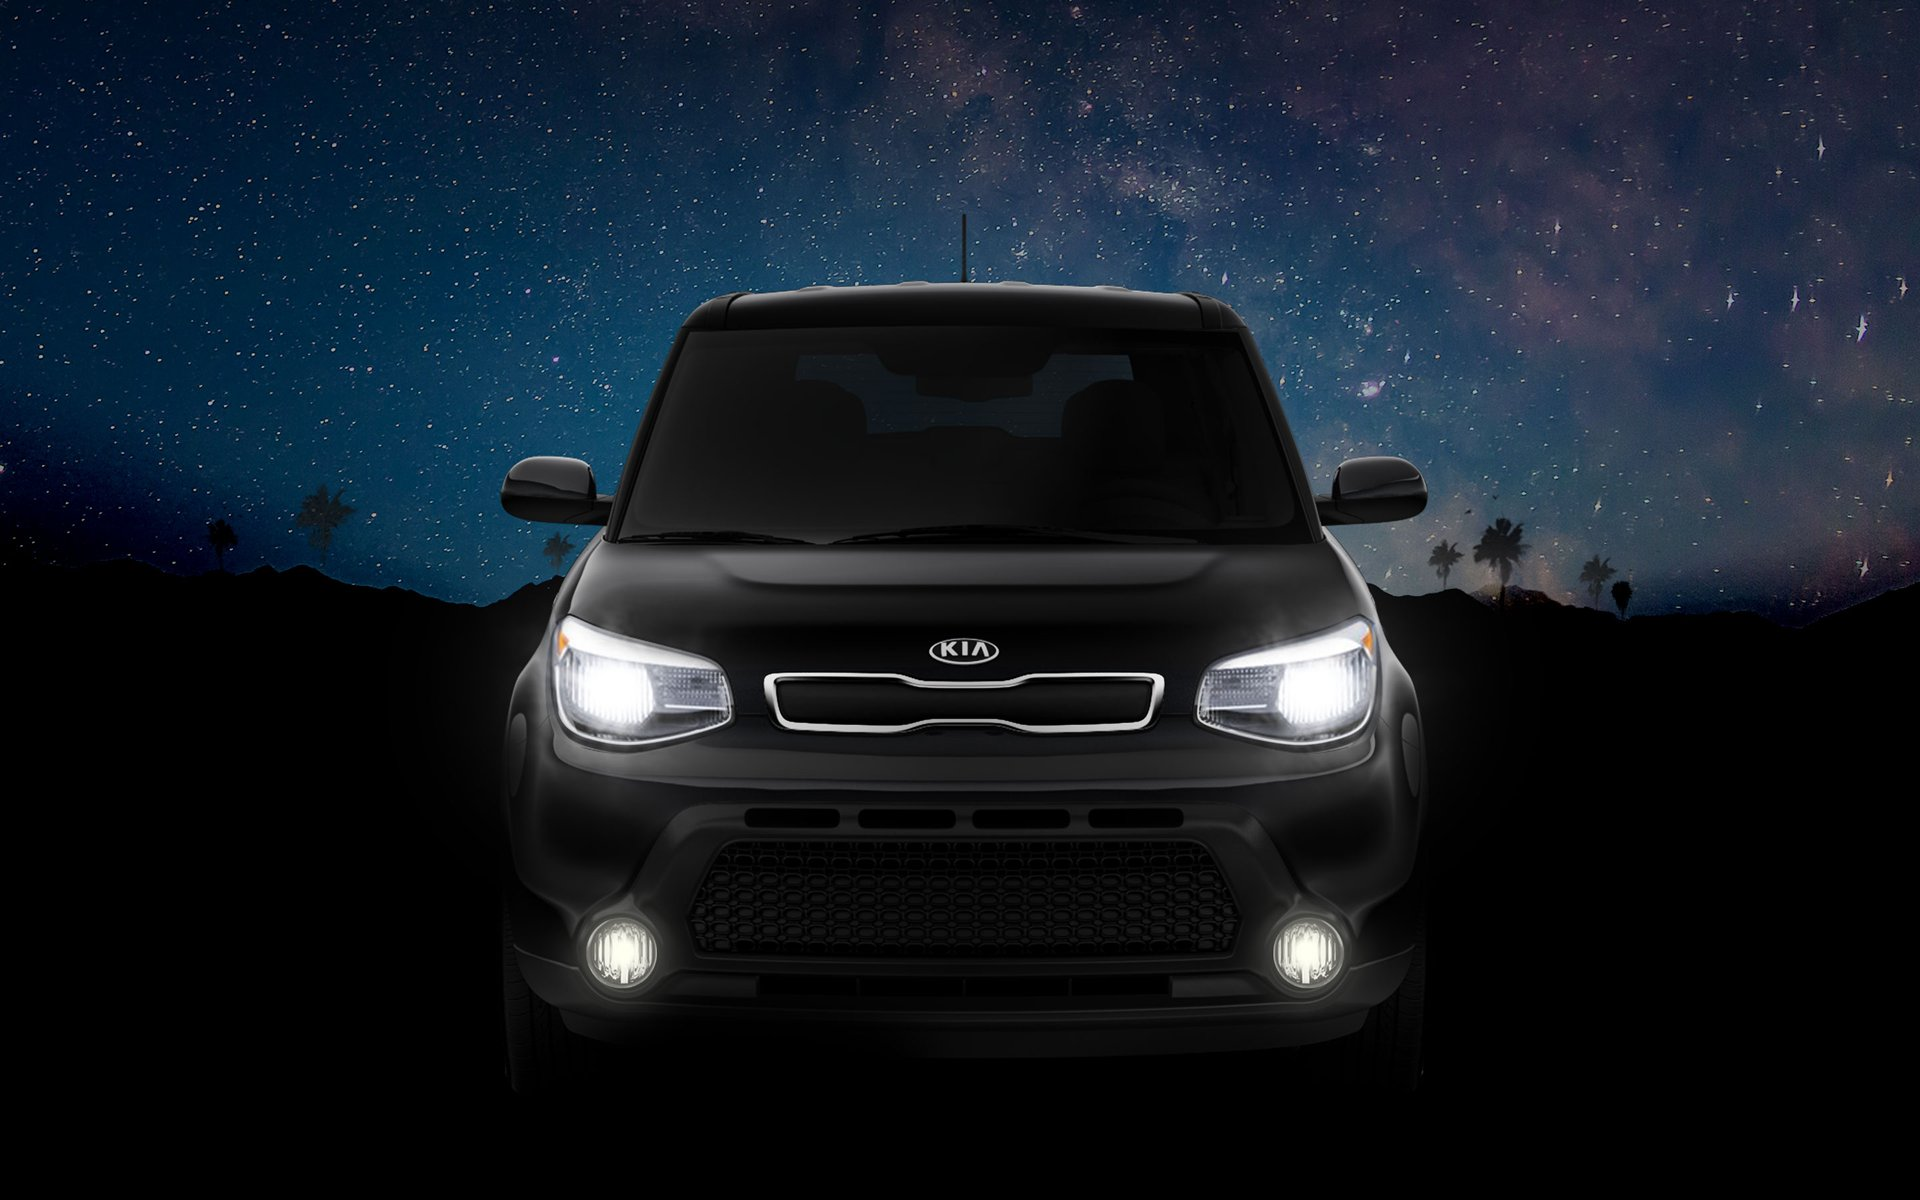 Set The Mood In A 2016 Kia Soul With Accent Lights That Change Color And Intensity Based On Audio